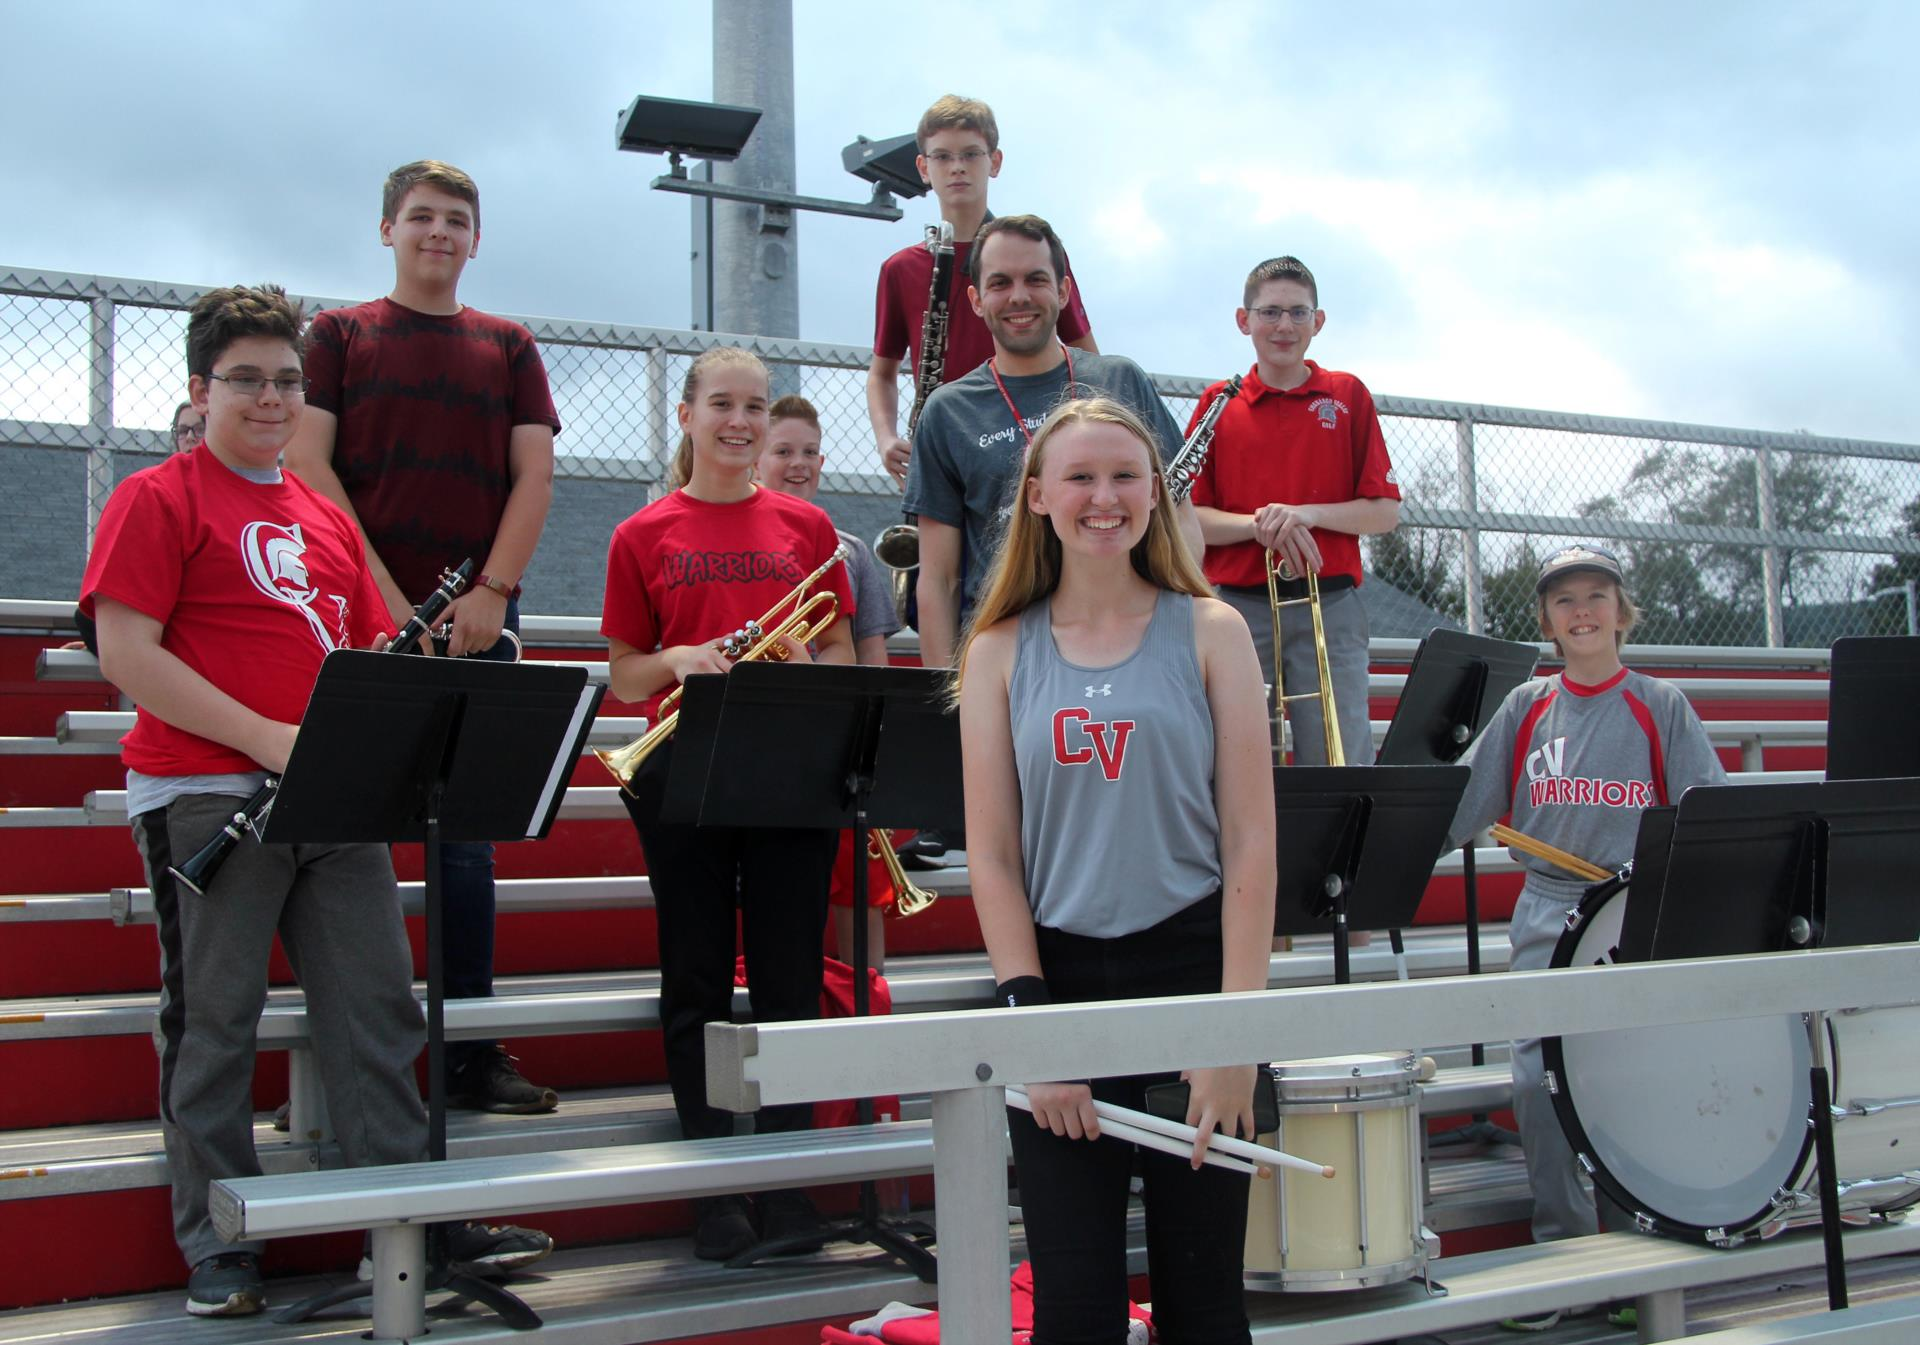 pep band at rally in the valley